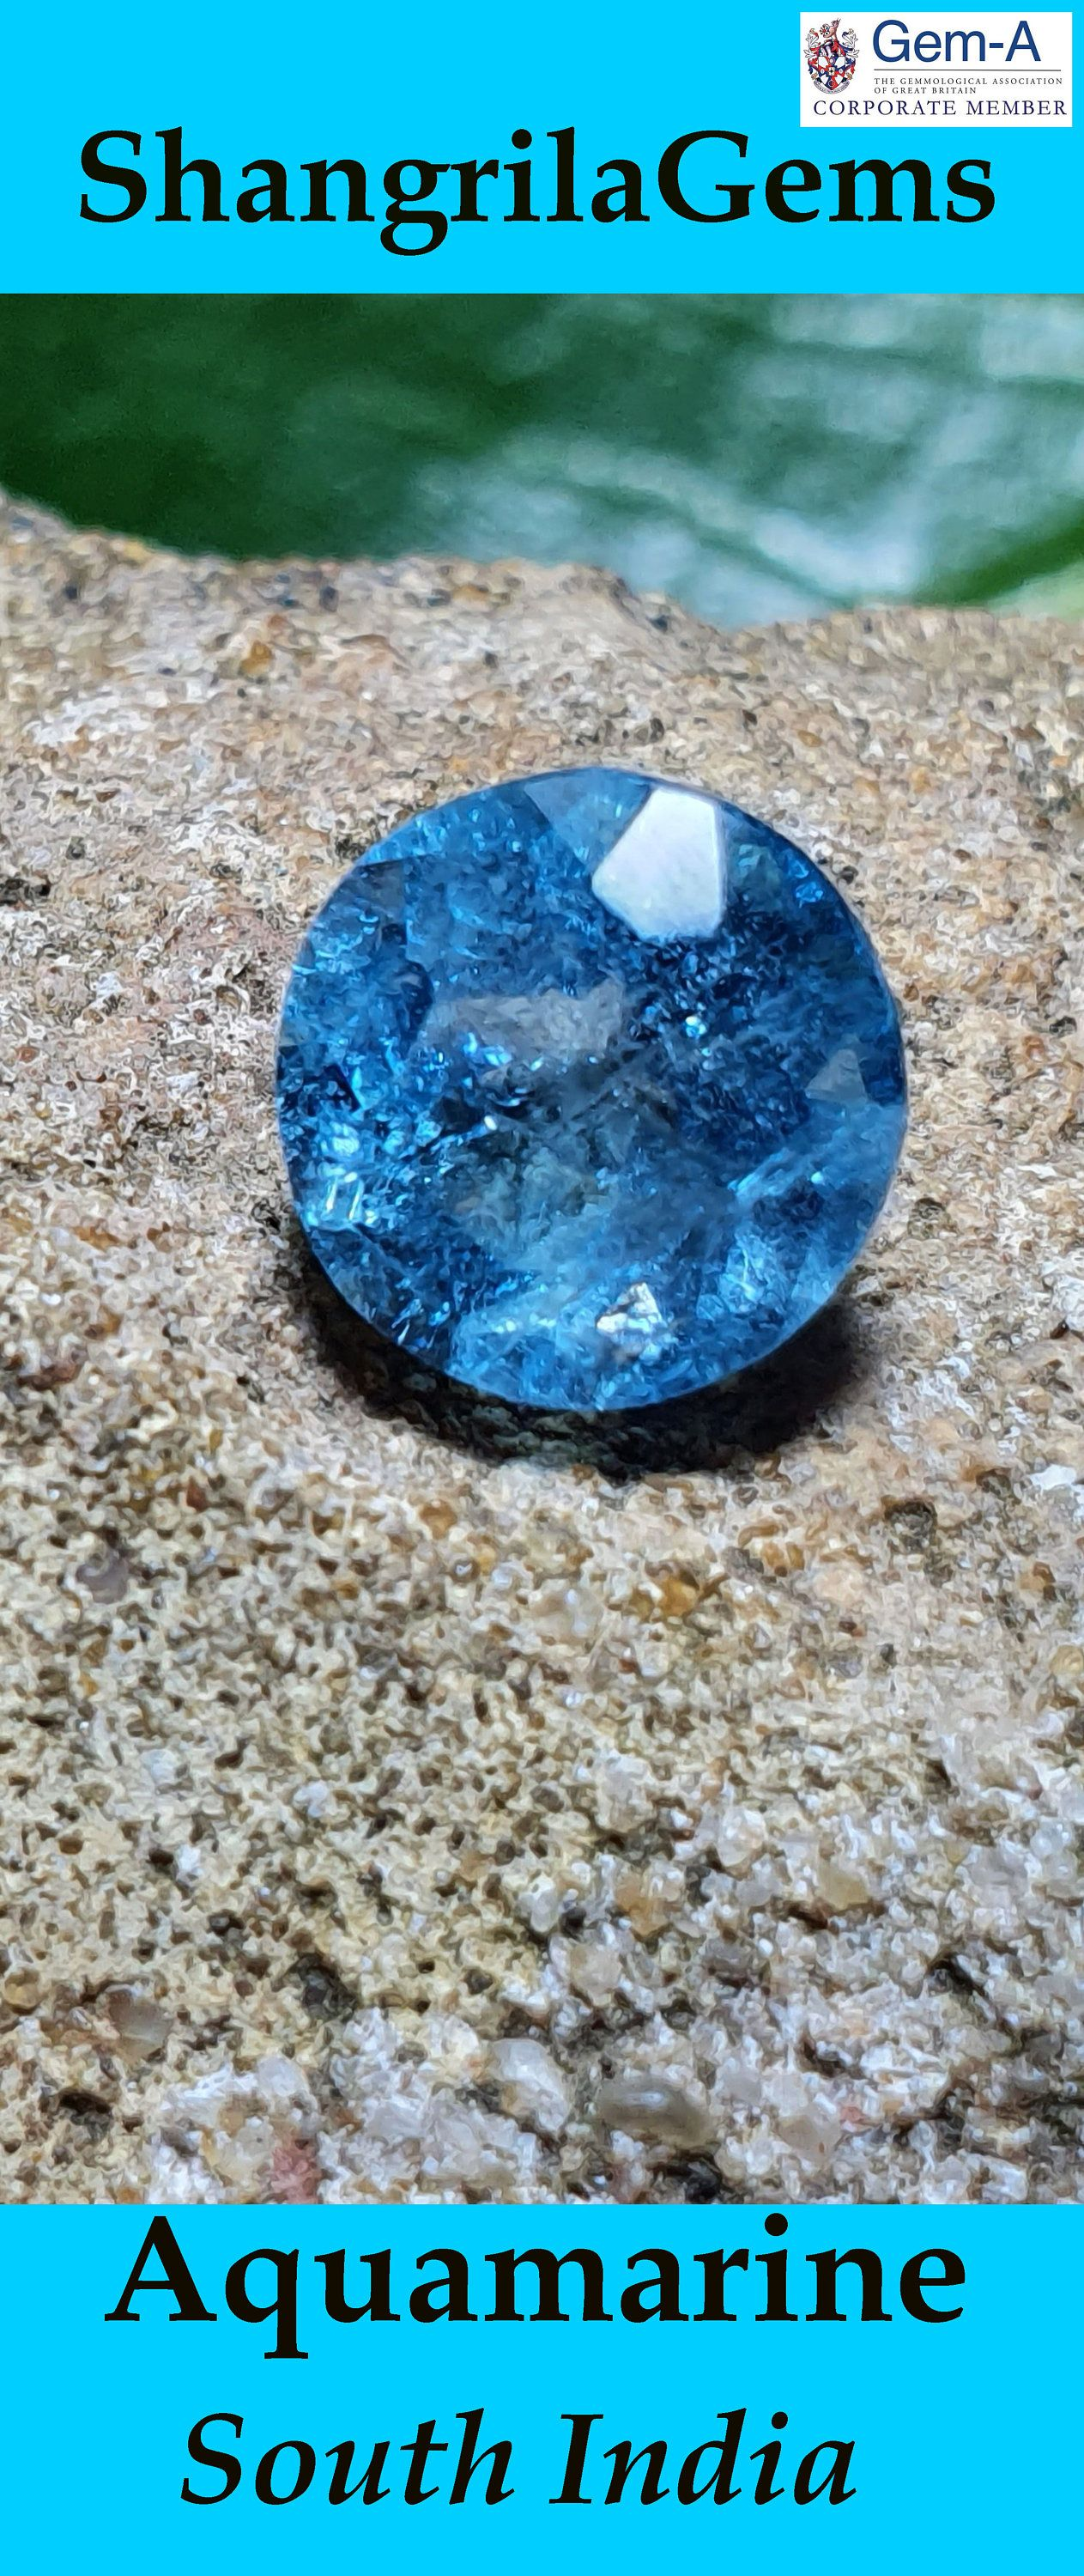 43mm Larimar cushion oblong cabochon 66ct 43 by 30 by 4.5mm